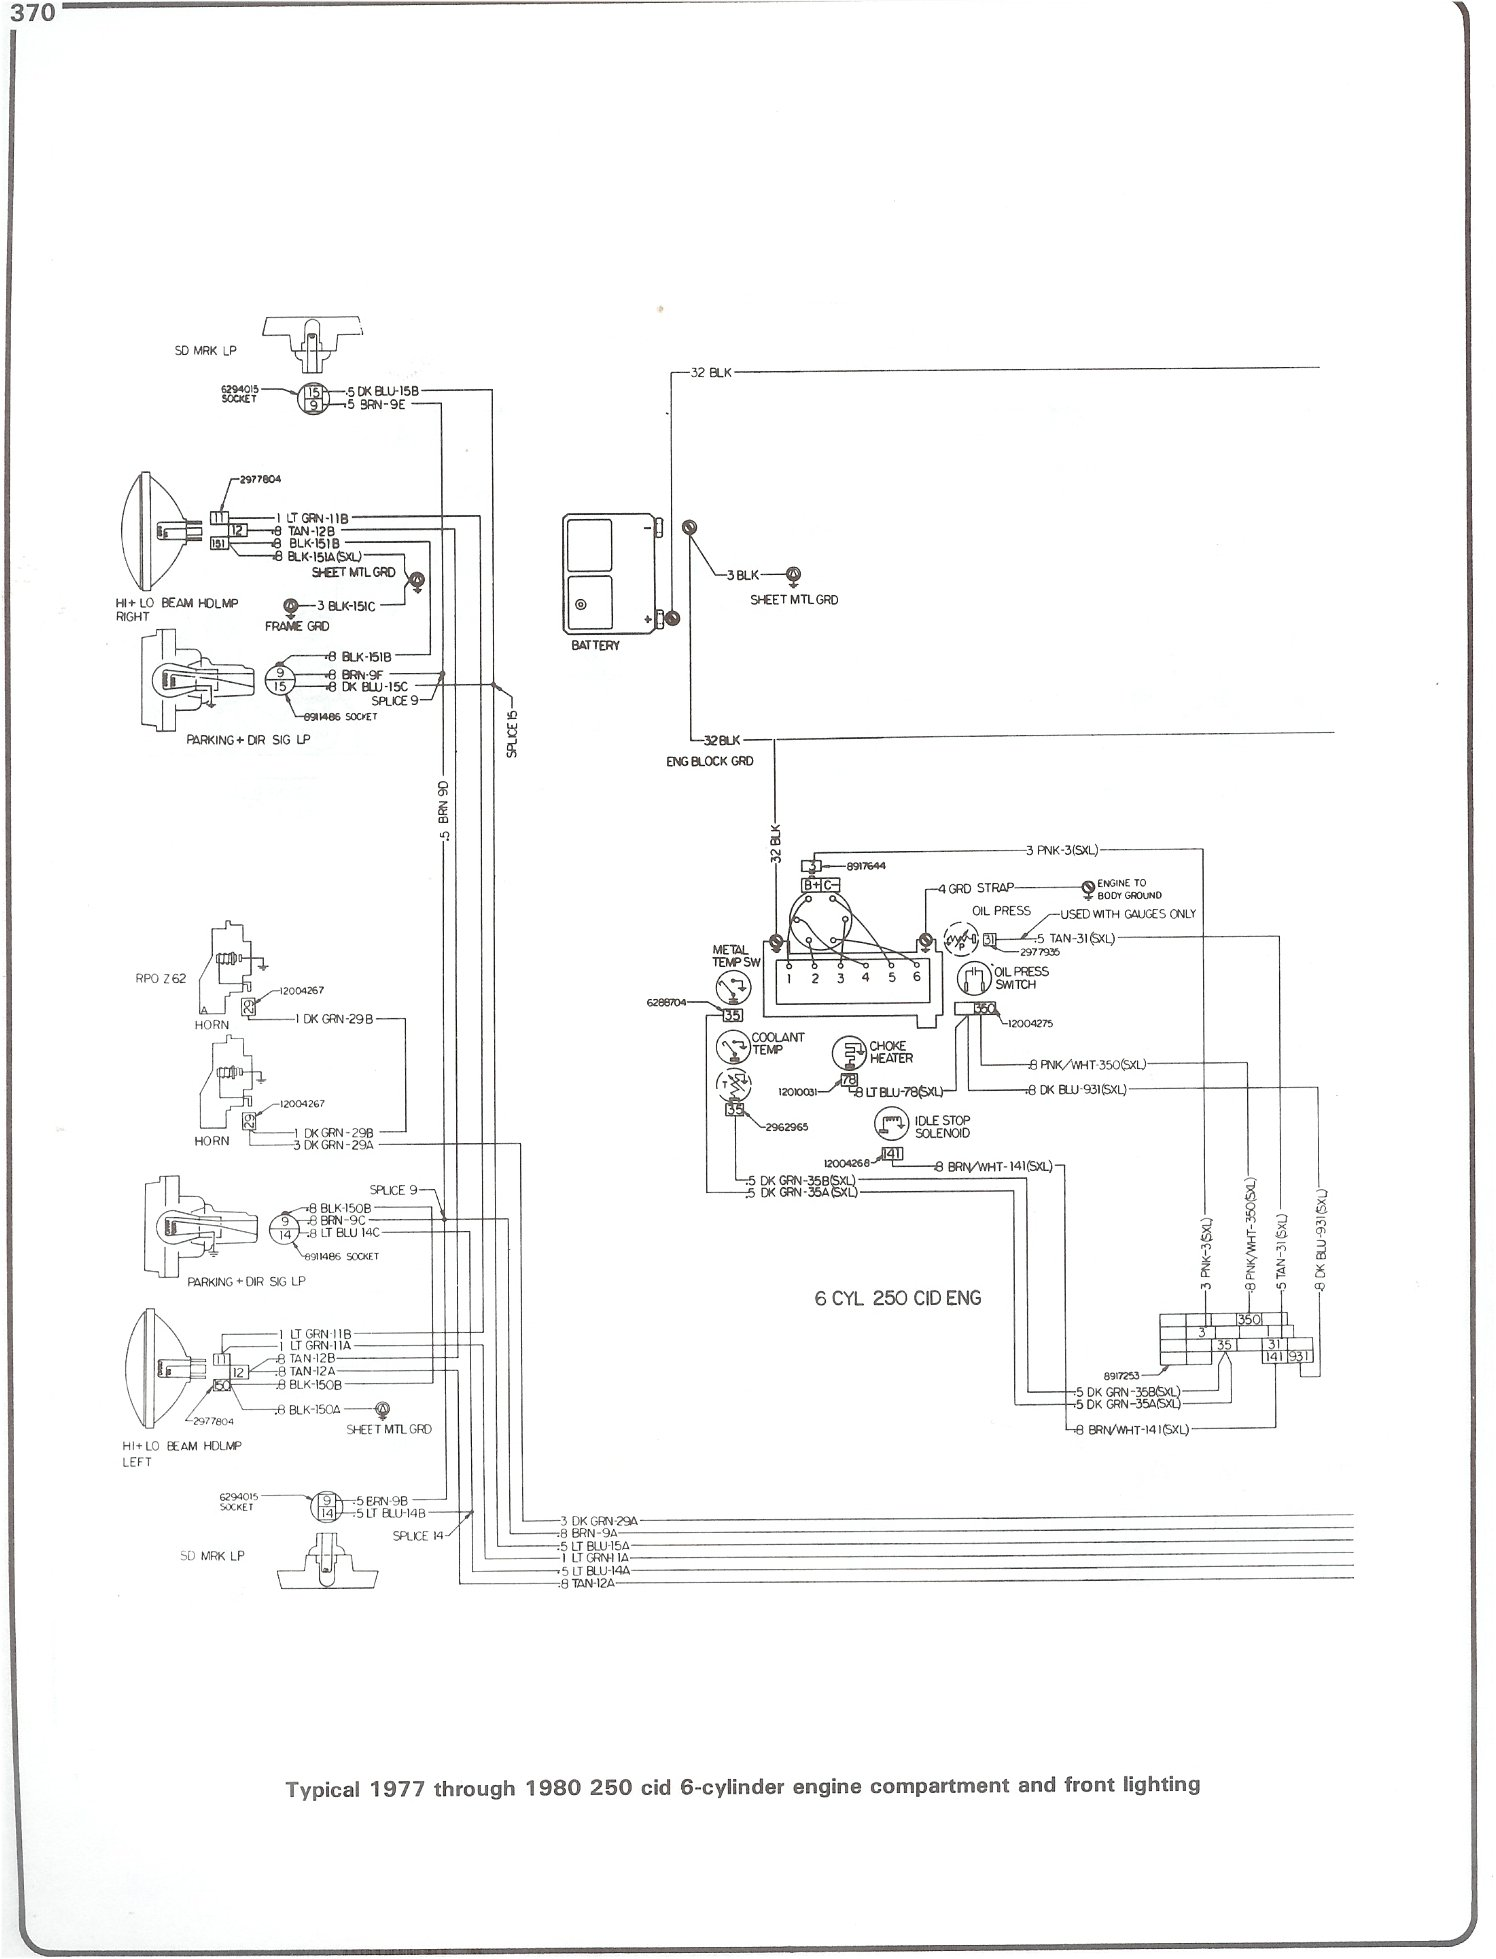 WRG-7447] 73 Blazer Fuel Gauge Wiring Diagram